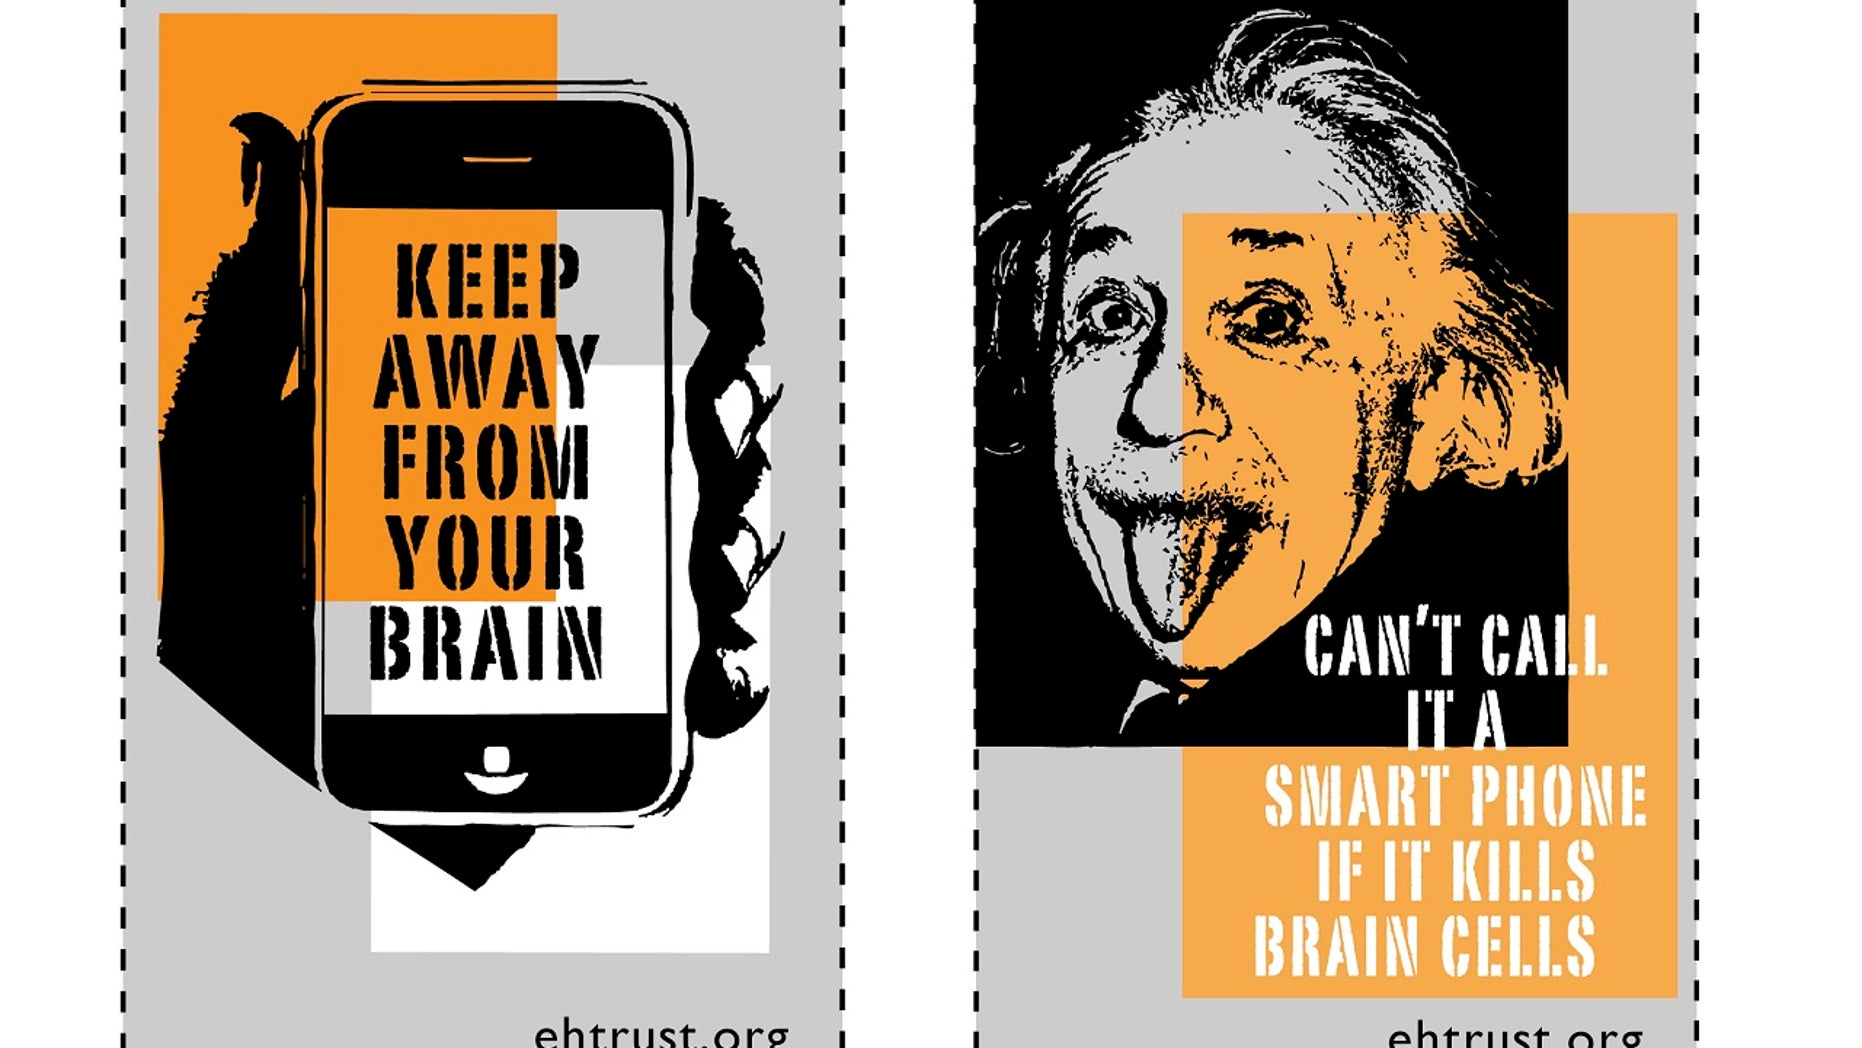 Cell phones should come with warning labels such as these ones, argues an environmental health group.